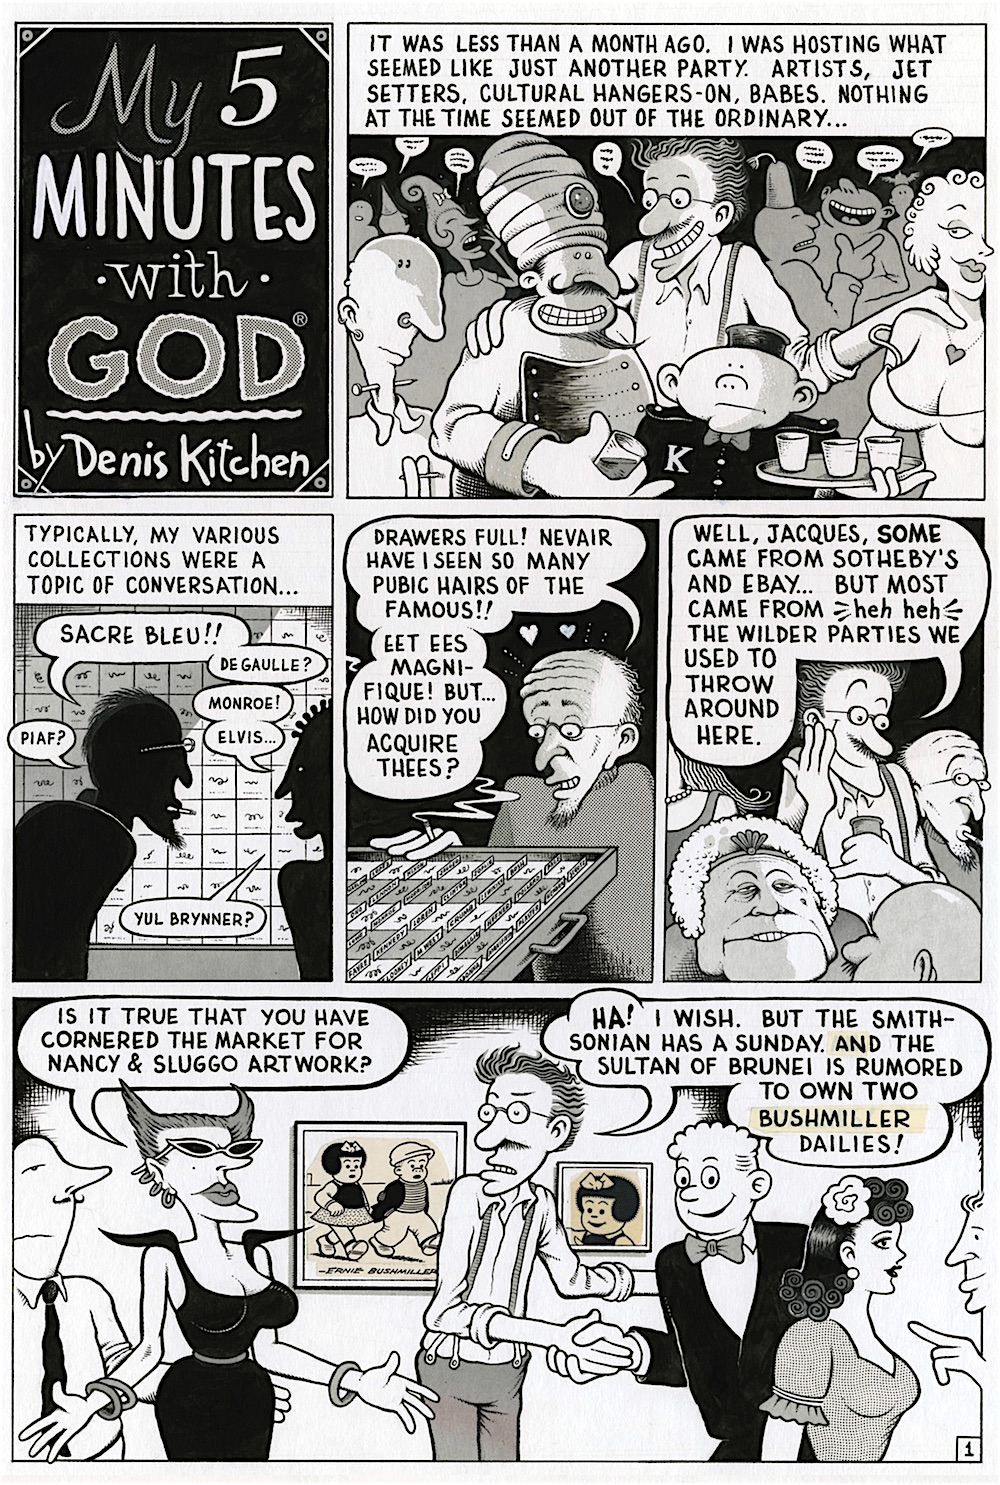 Denis                                                           Kitchen Five                                                           Minutes With                                                           God